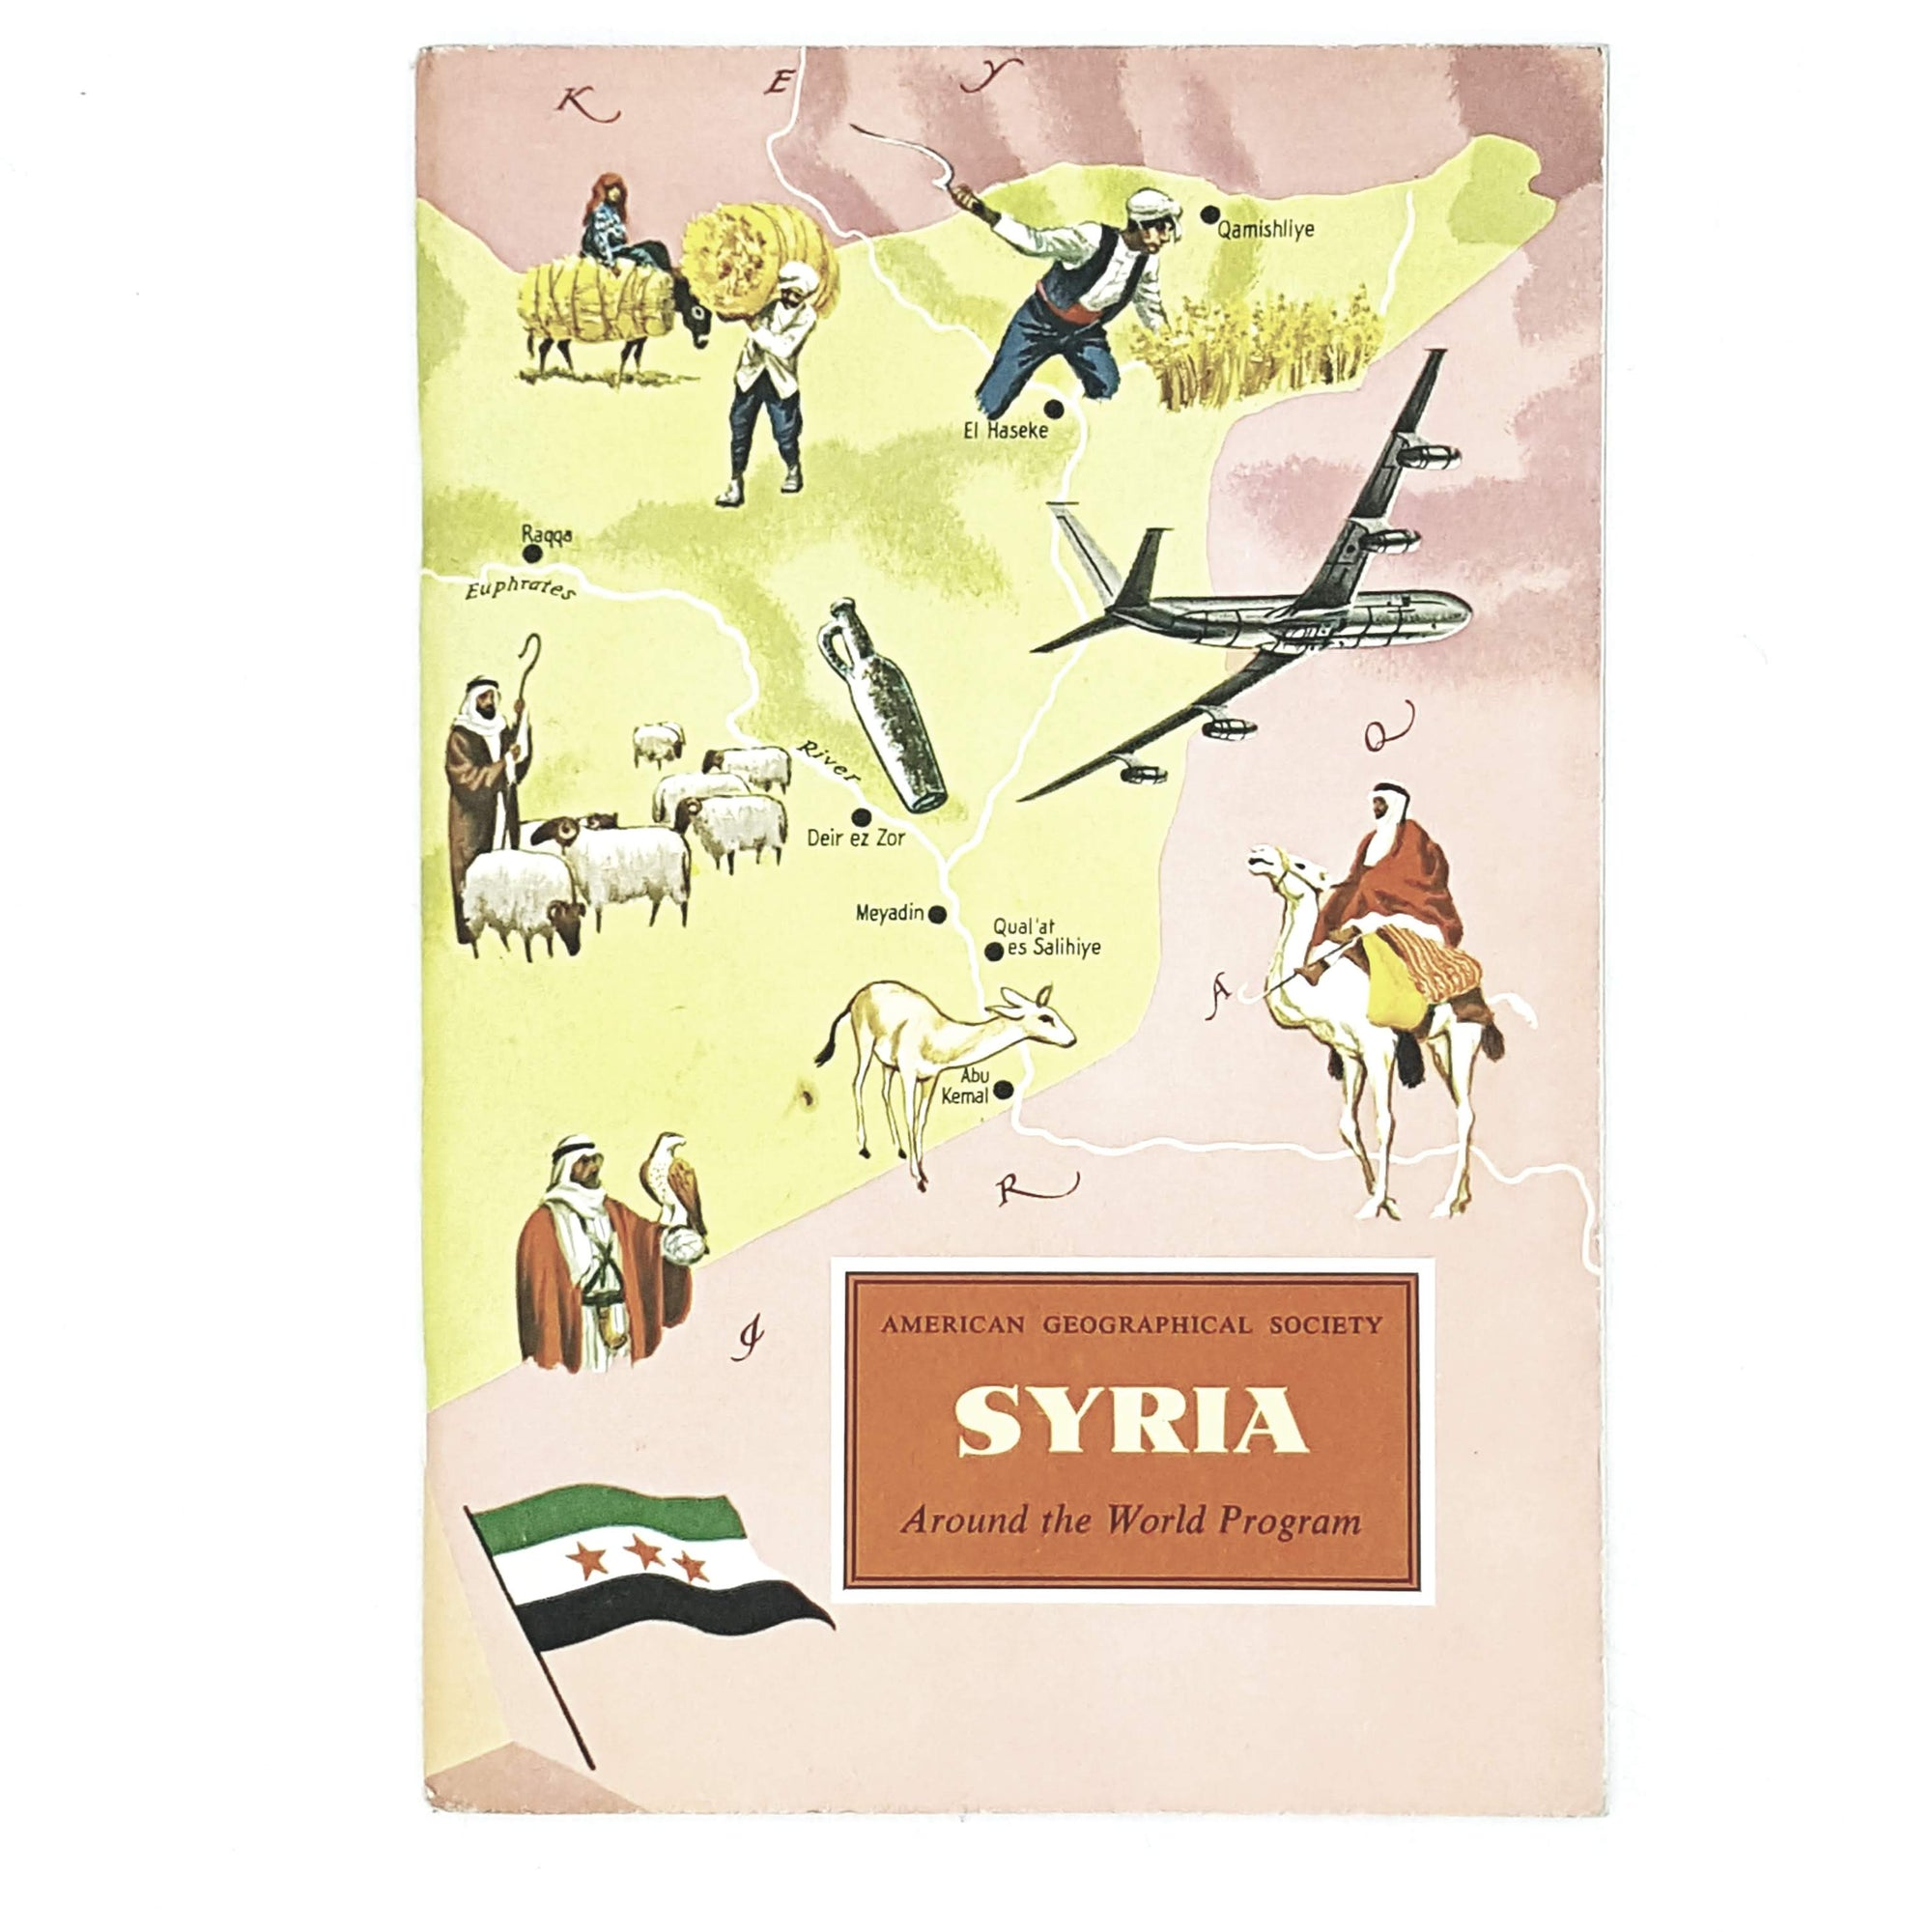 Vintage Travel: Syria by Alice Taylor 1965